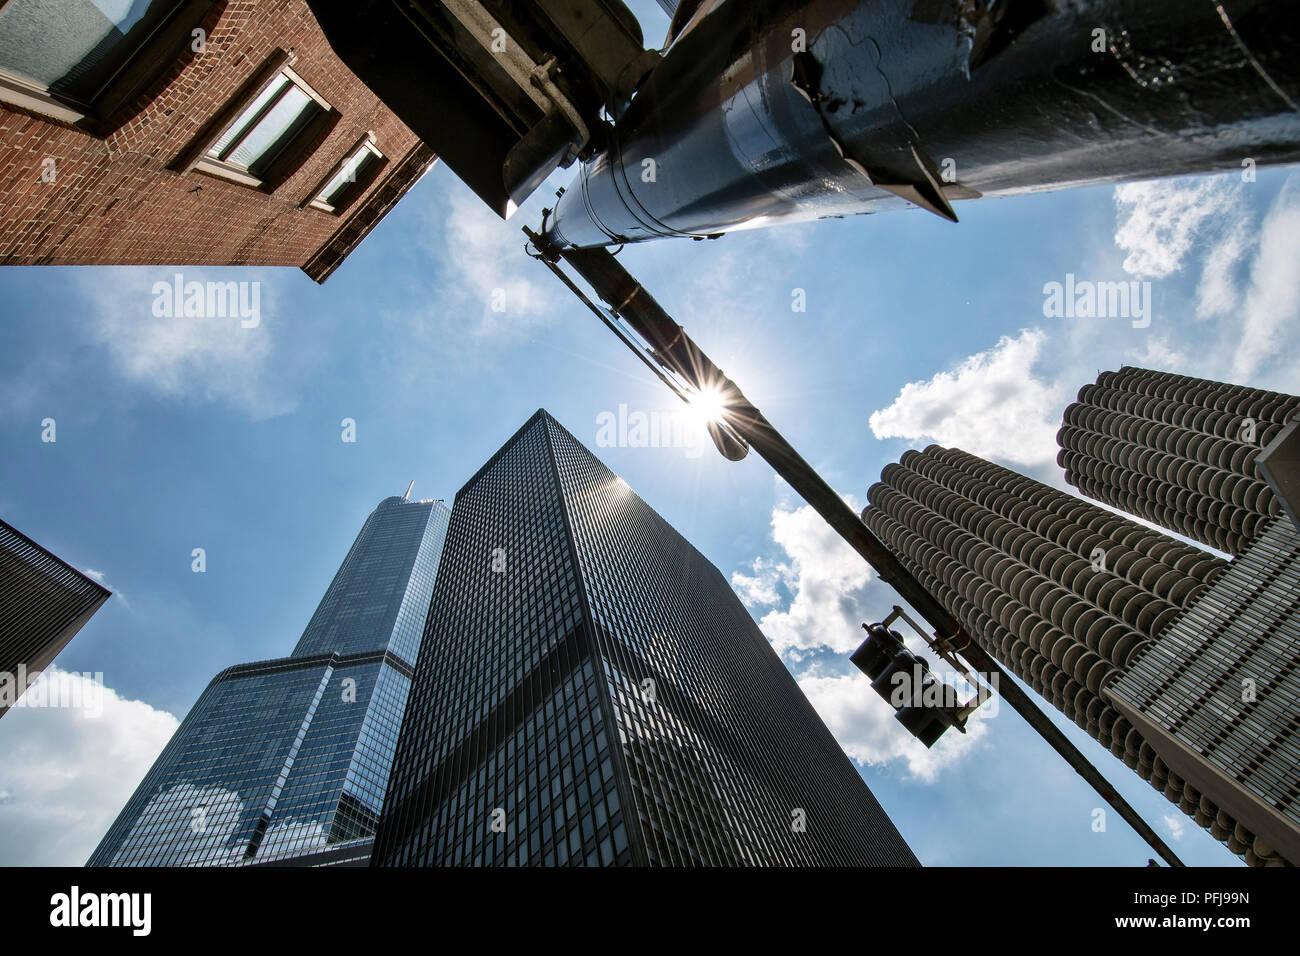 Downtown Chicago skyscrapers, (from right) Marina Towers, The Langham, Trump Tower. - Stock Image